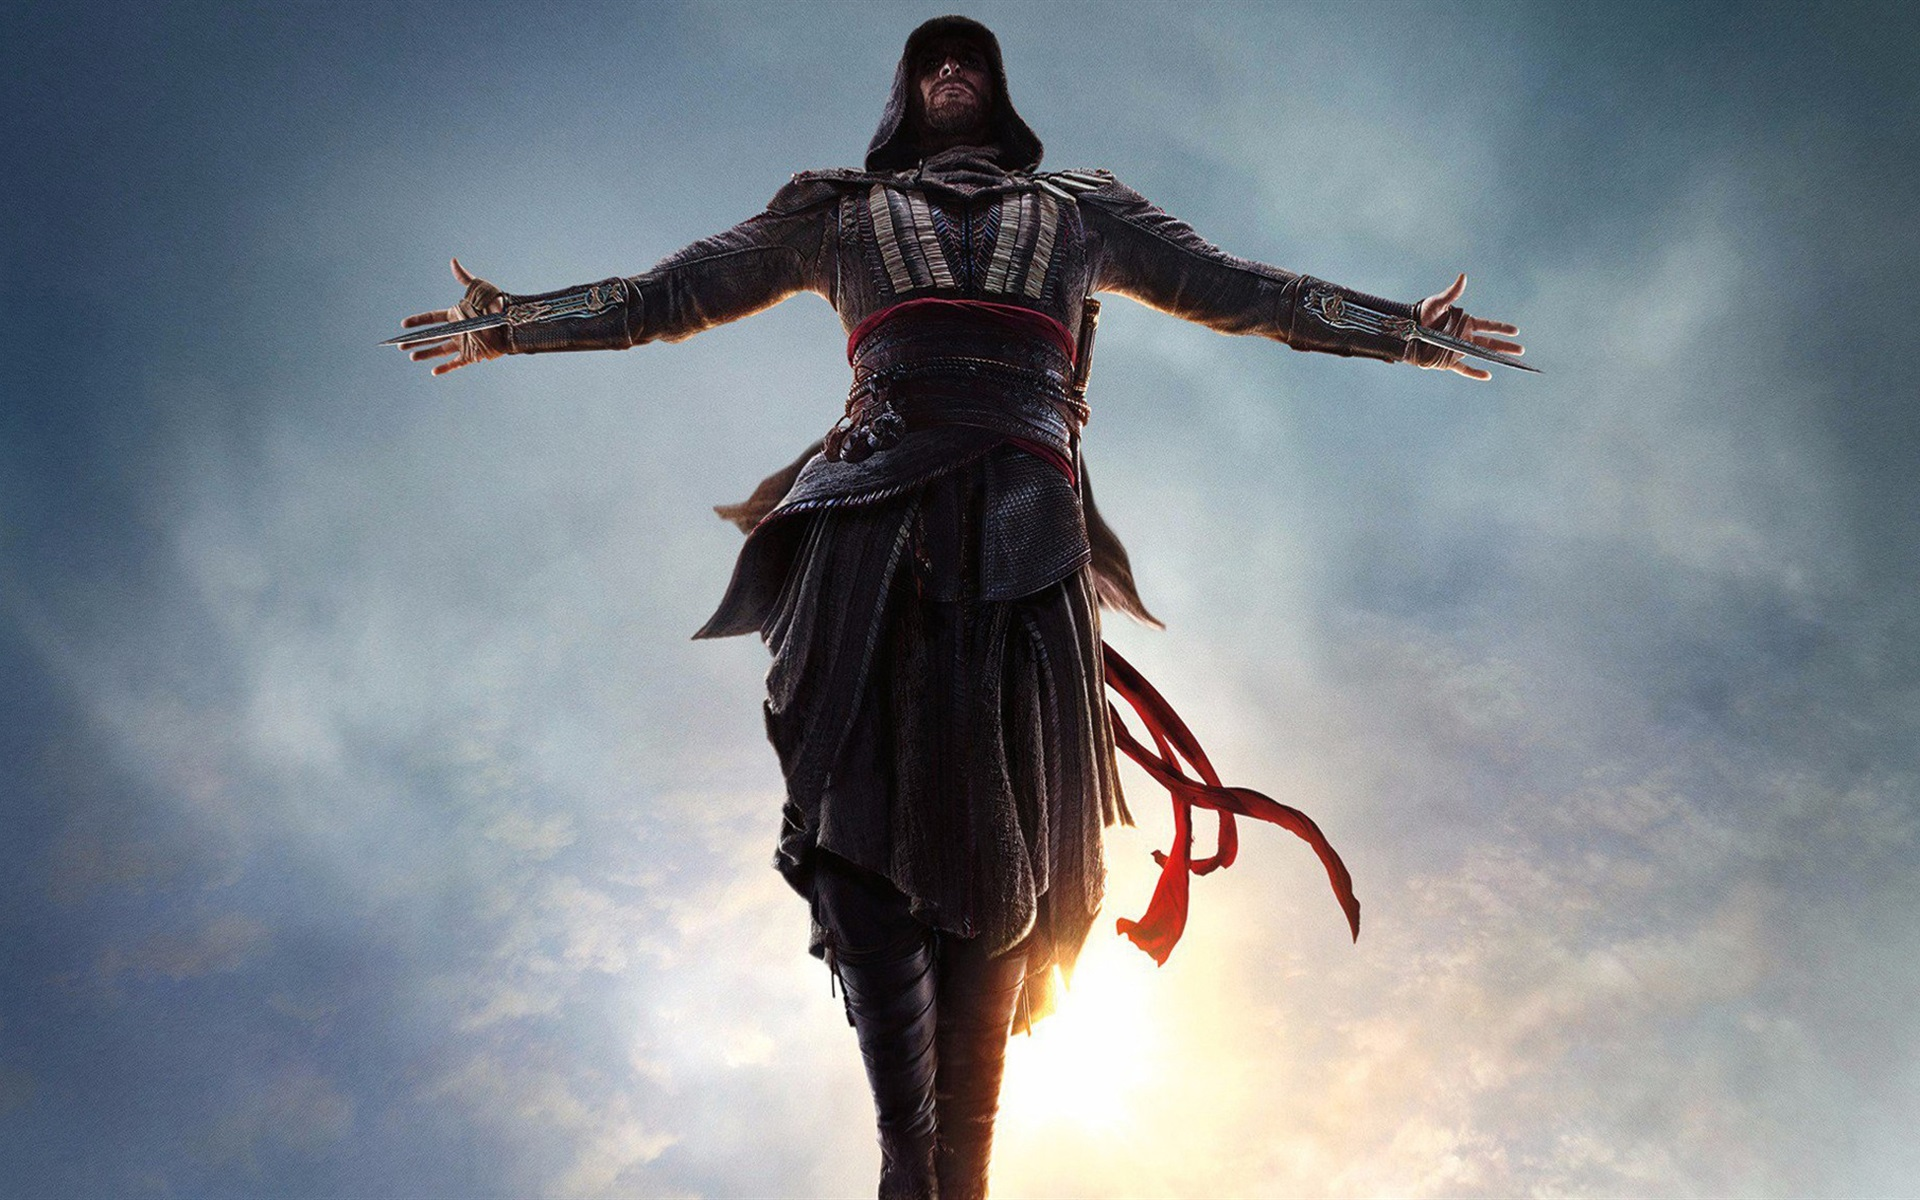 Wallpaper Assassin S Creed Jump 1920x1200 Hd Picture Image